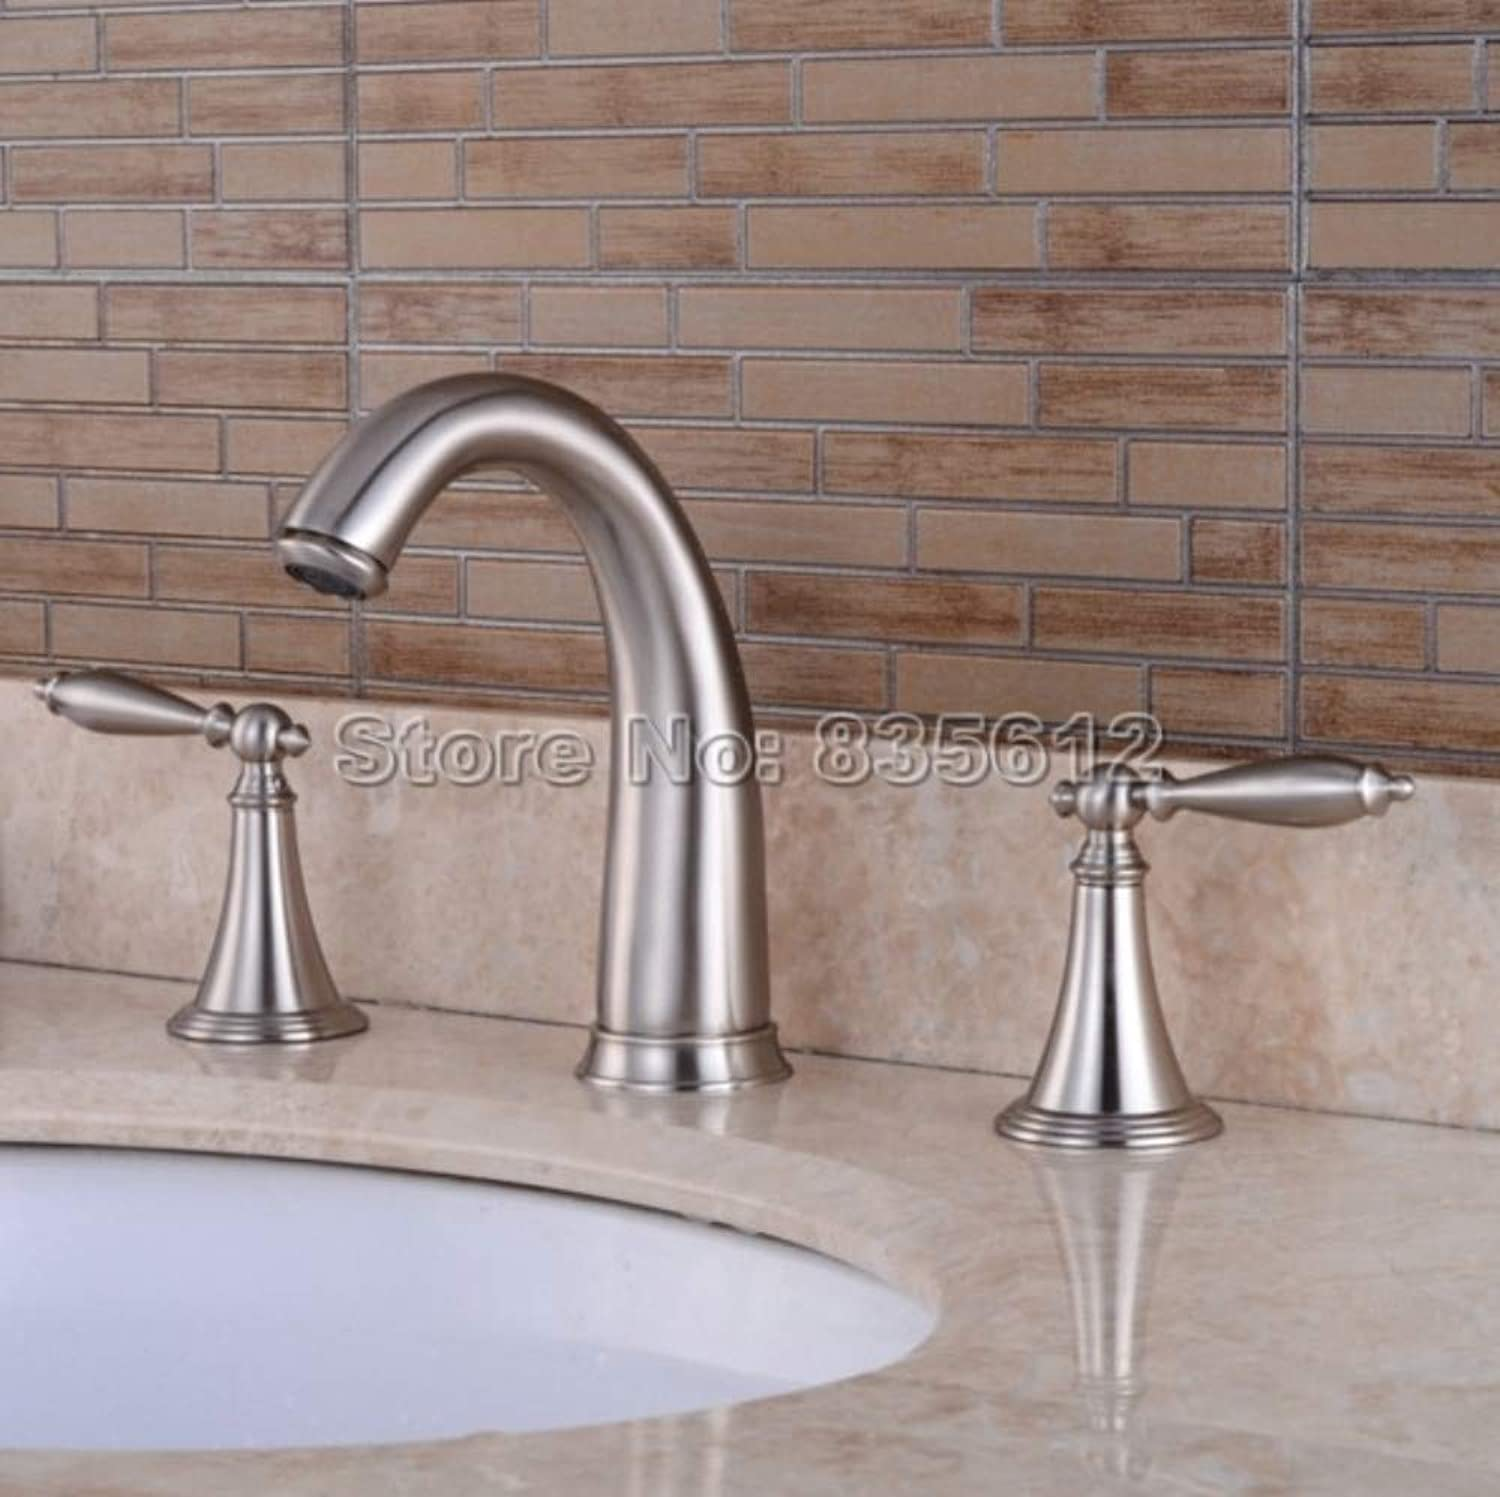 Bathroom Sink Tap Brushed Nickel Dual Lever Bathroom Basin Faucet Deck Mounted Widespread 3 Hole Sink Mixer Taps Bath Tub Faucets